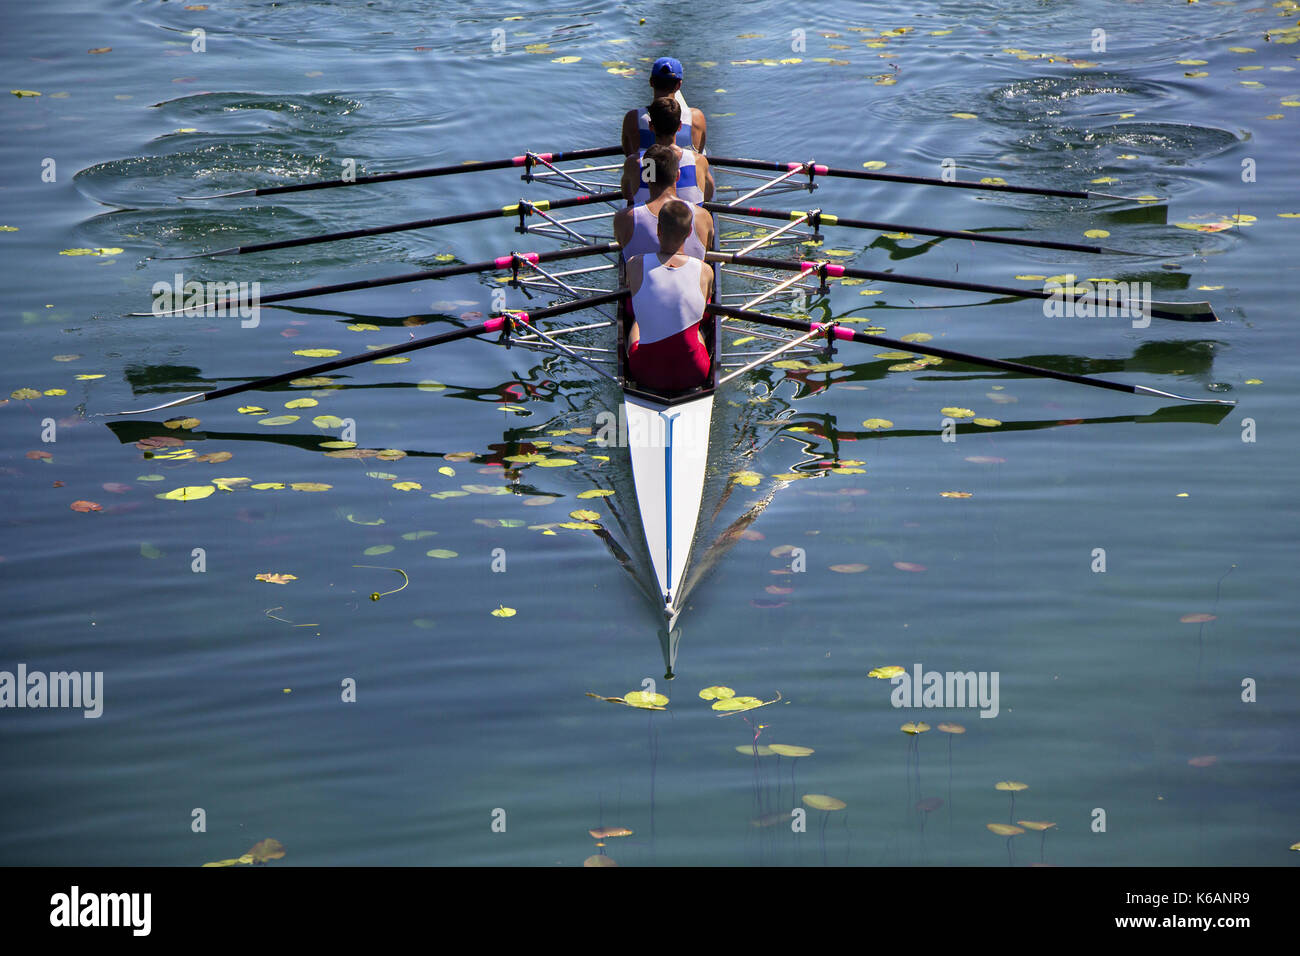 Males fours rowing team in race on the lake - Stock Image